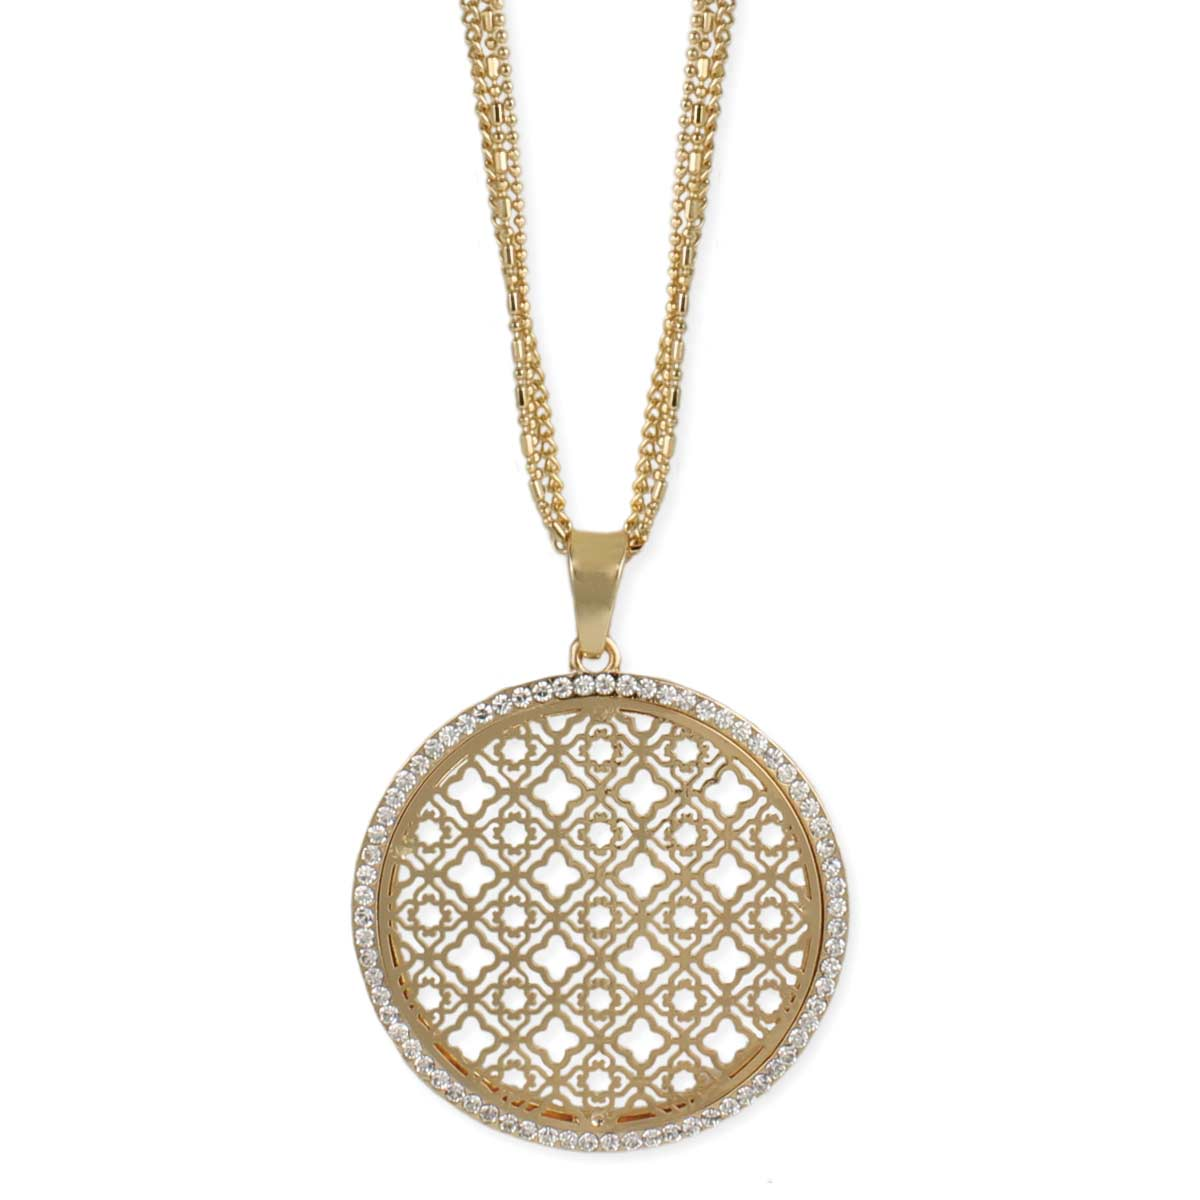 Round gold filigree pendant long necklace view detailed images 2 mozeypictures Images